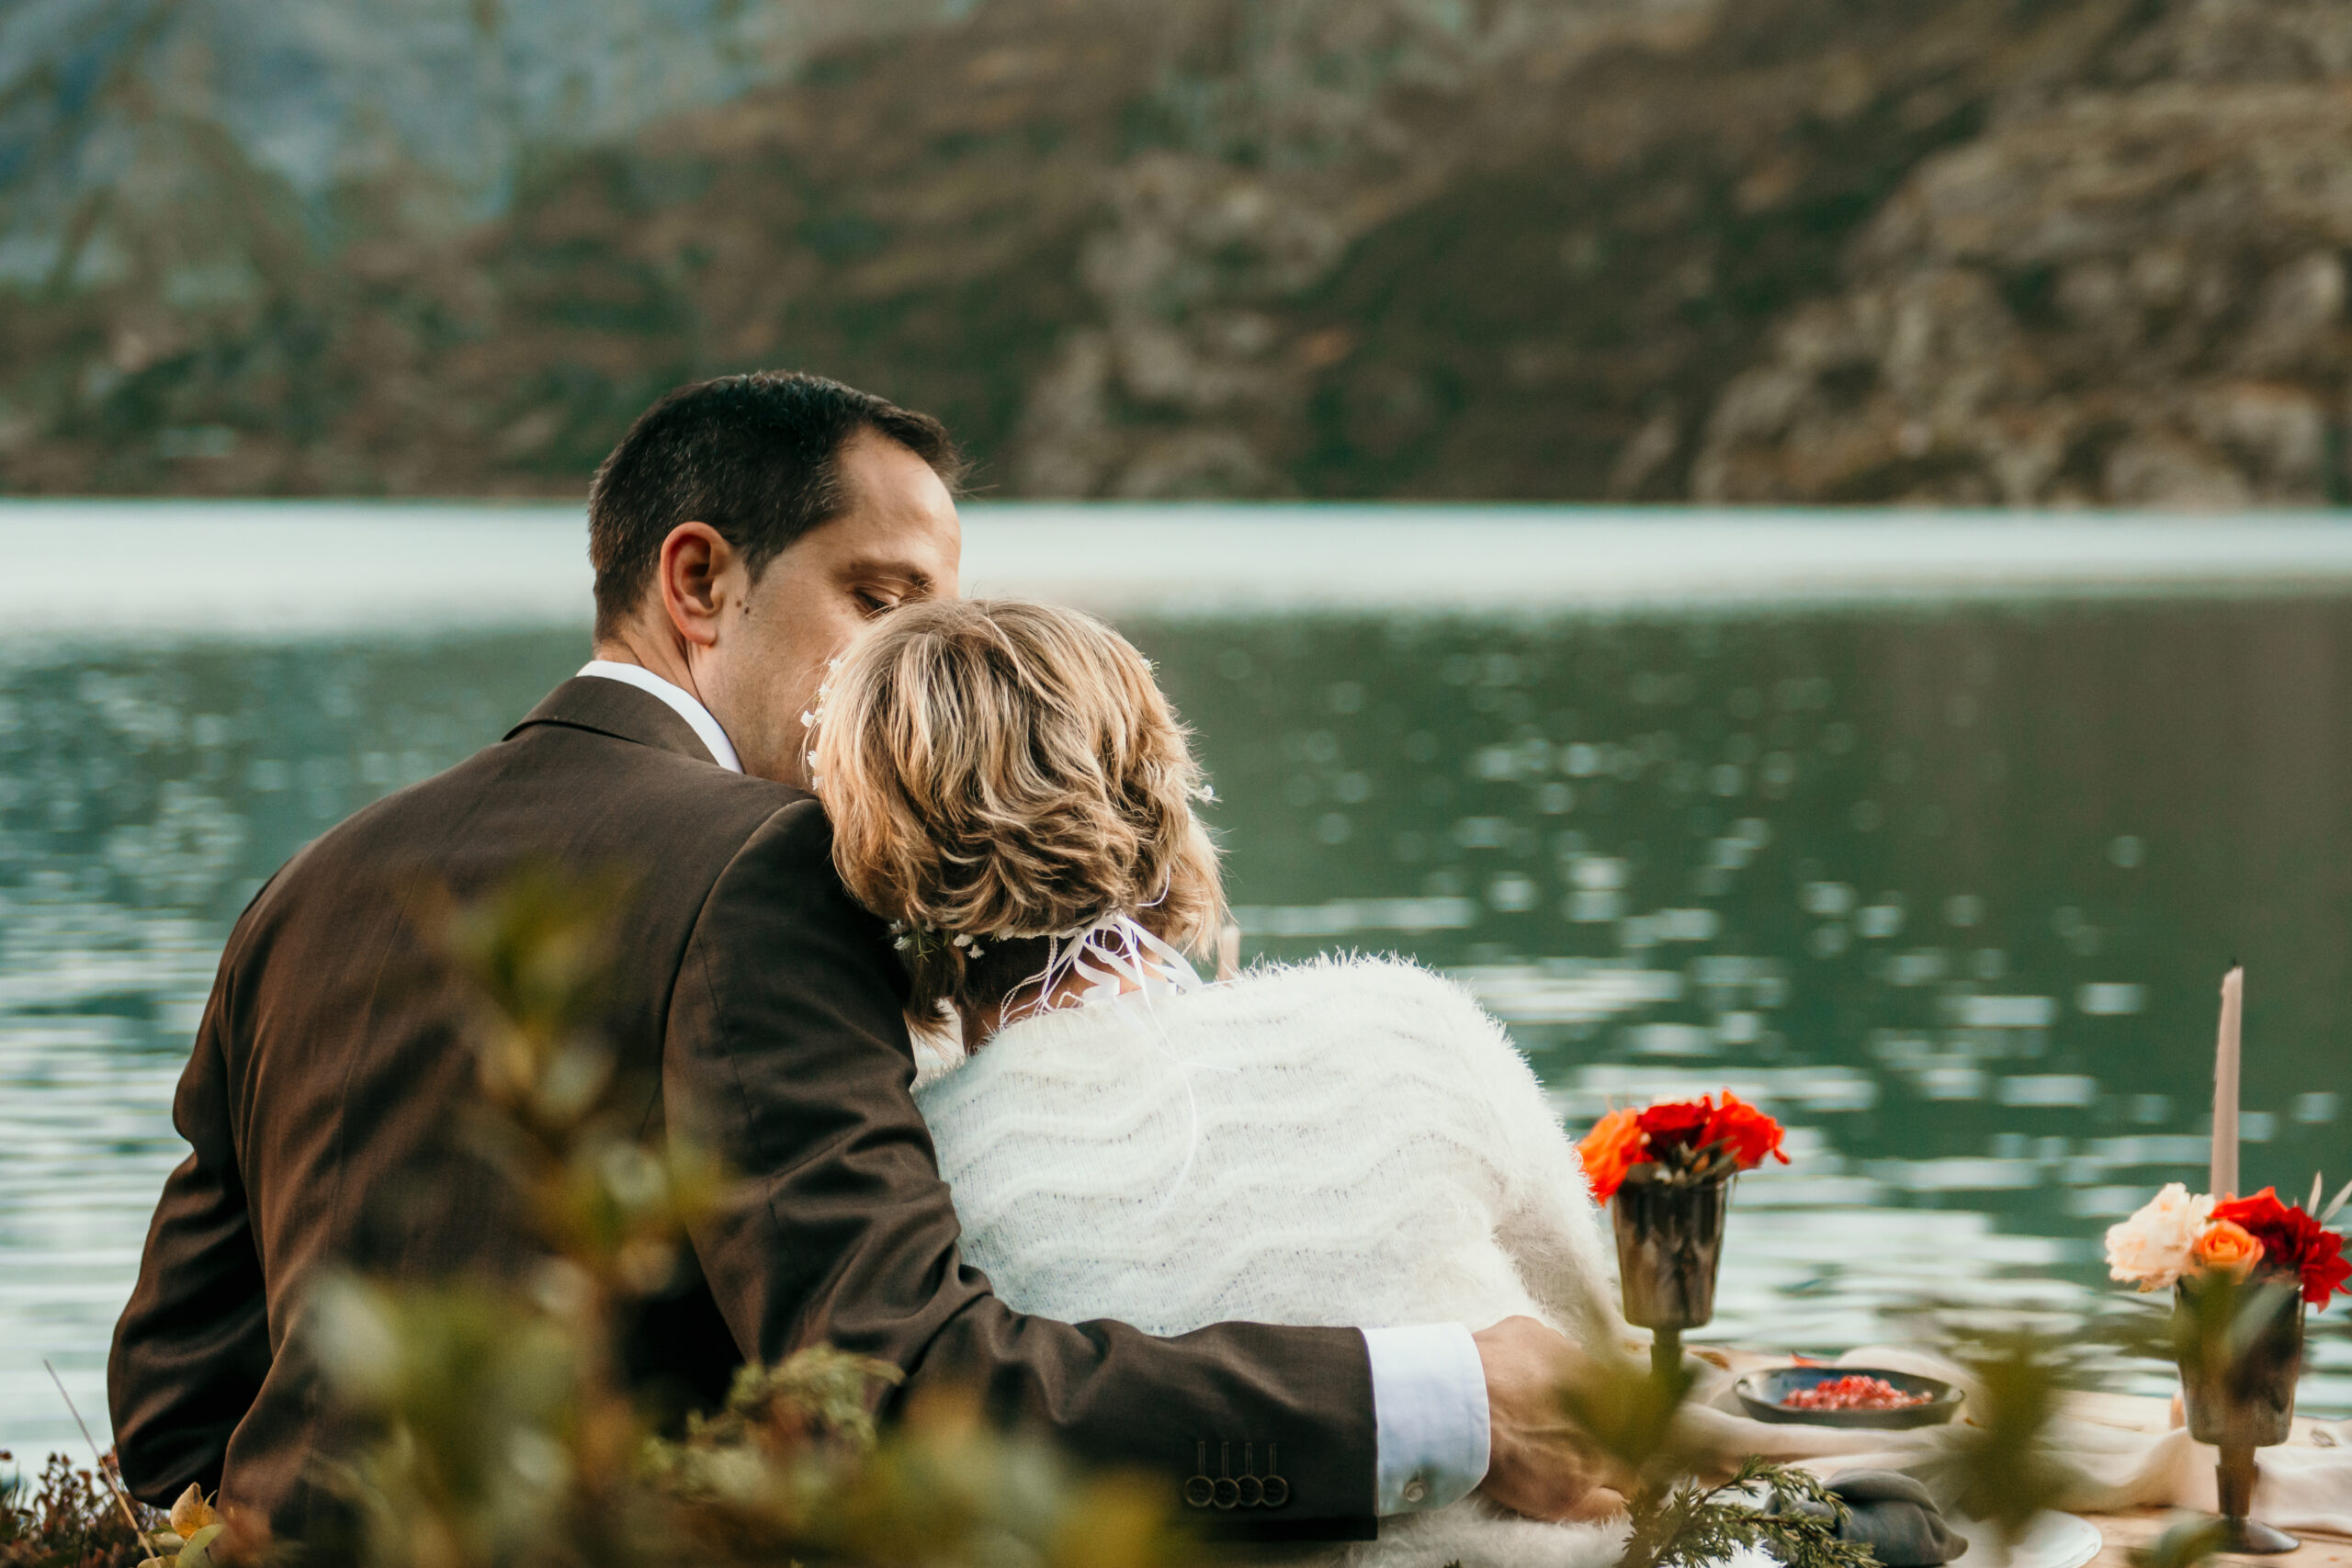 Ditch the stress and anxiety and instead, elope to enjoy a relaxed, laid-back wedding experience with those that mean most to you